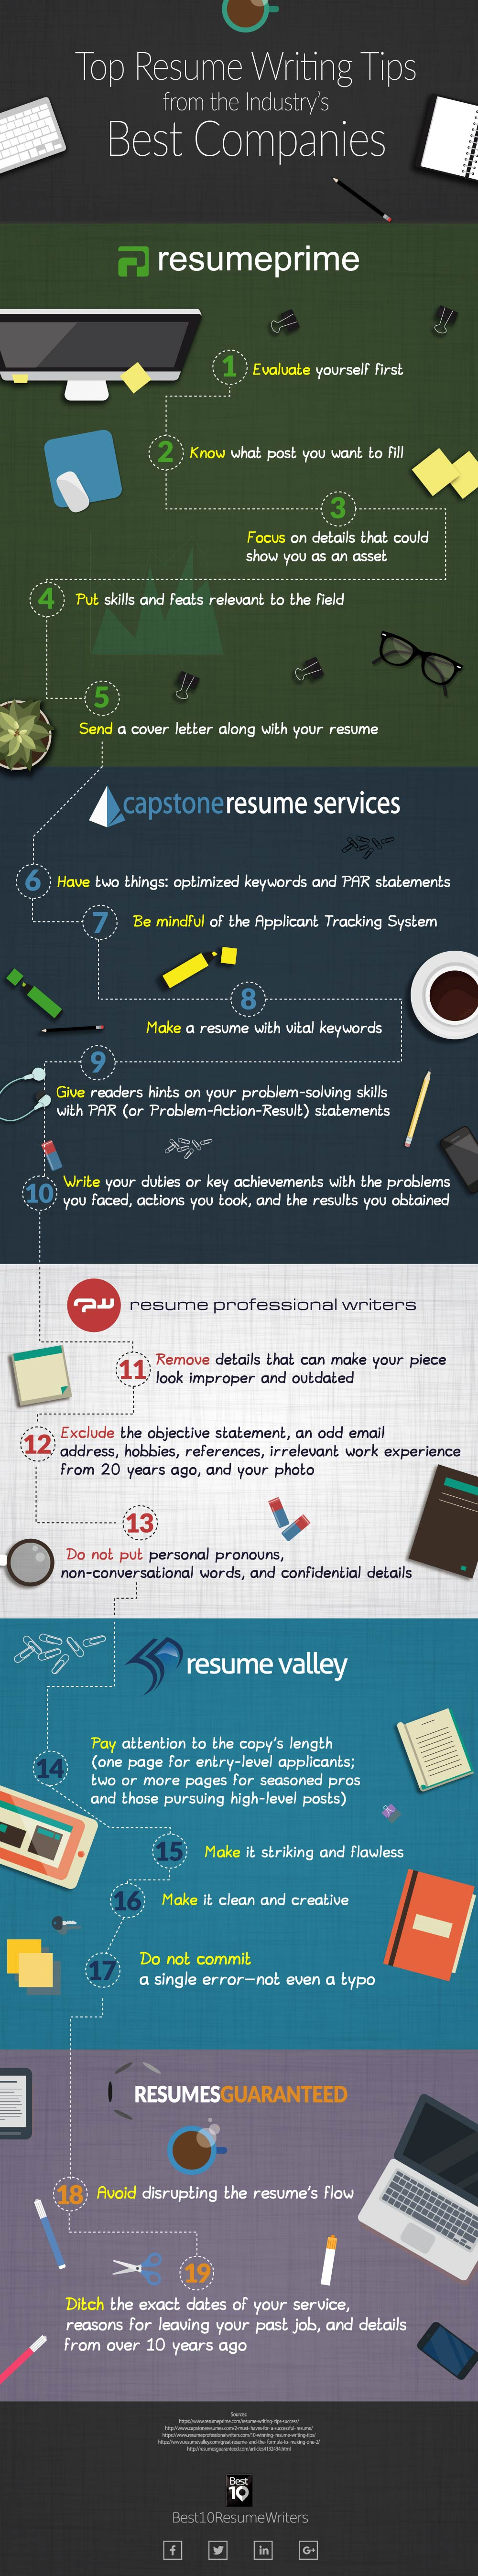 an infographic of resume writing tips from some of the best professional resume writing services